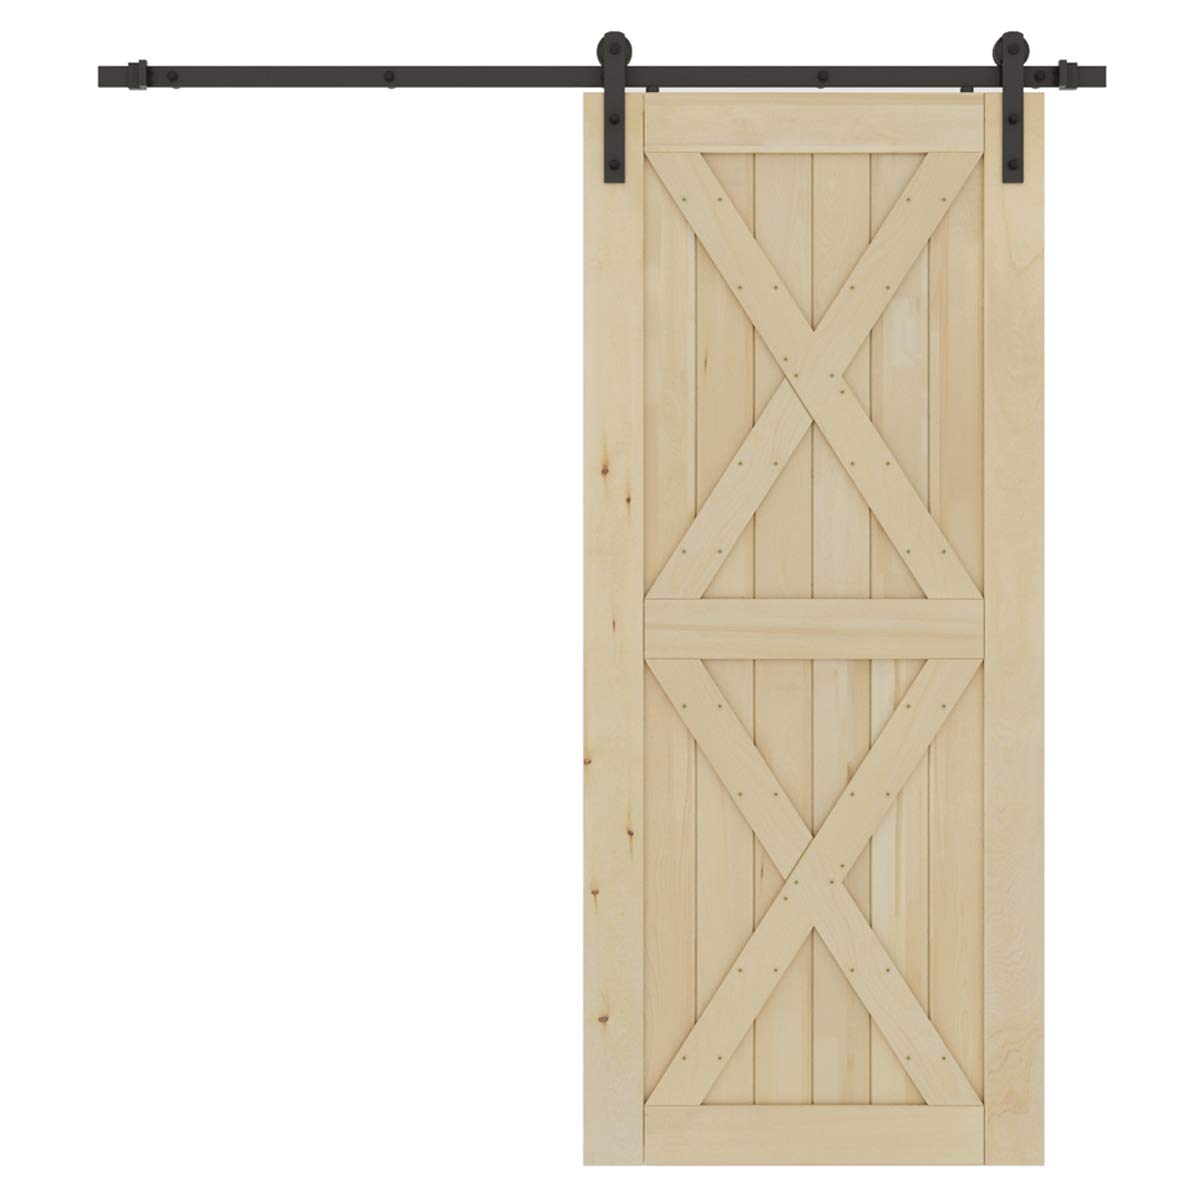 SMARTSTANDARD 36in x 84in Sliding Barn Wood Door Pre-Drilled Ready to Assemble, DIY Unfinished Solid Cypress Panelled Slab, Interior Single, Natural (X-Frame Panel)